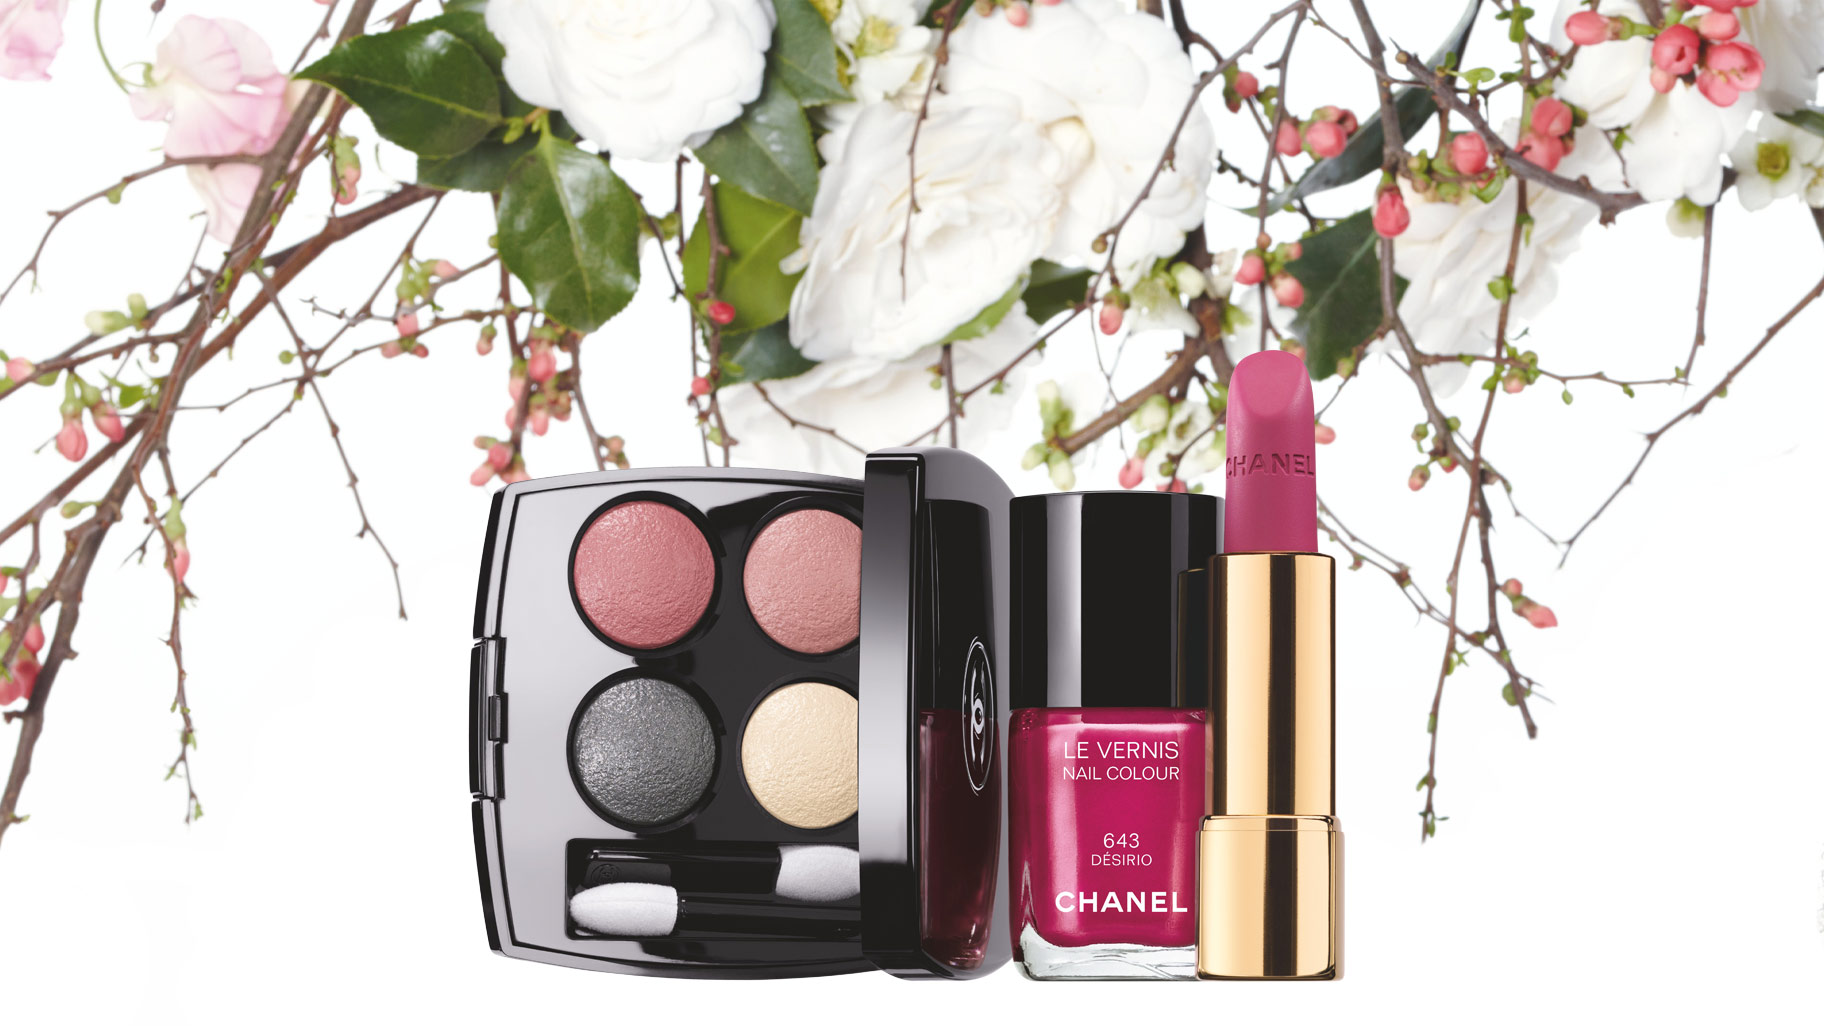 Nieuwe-lente-2015-make-up-collectie-van-Chanel-thenewgirlintown11